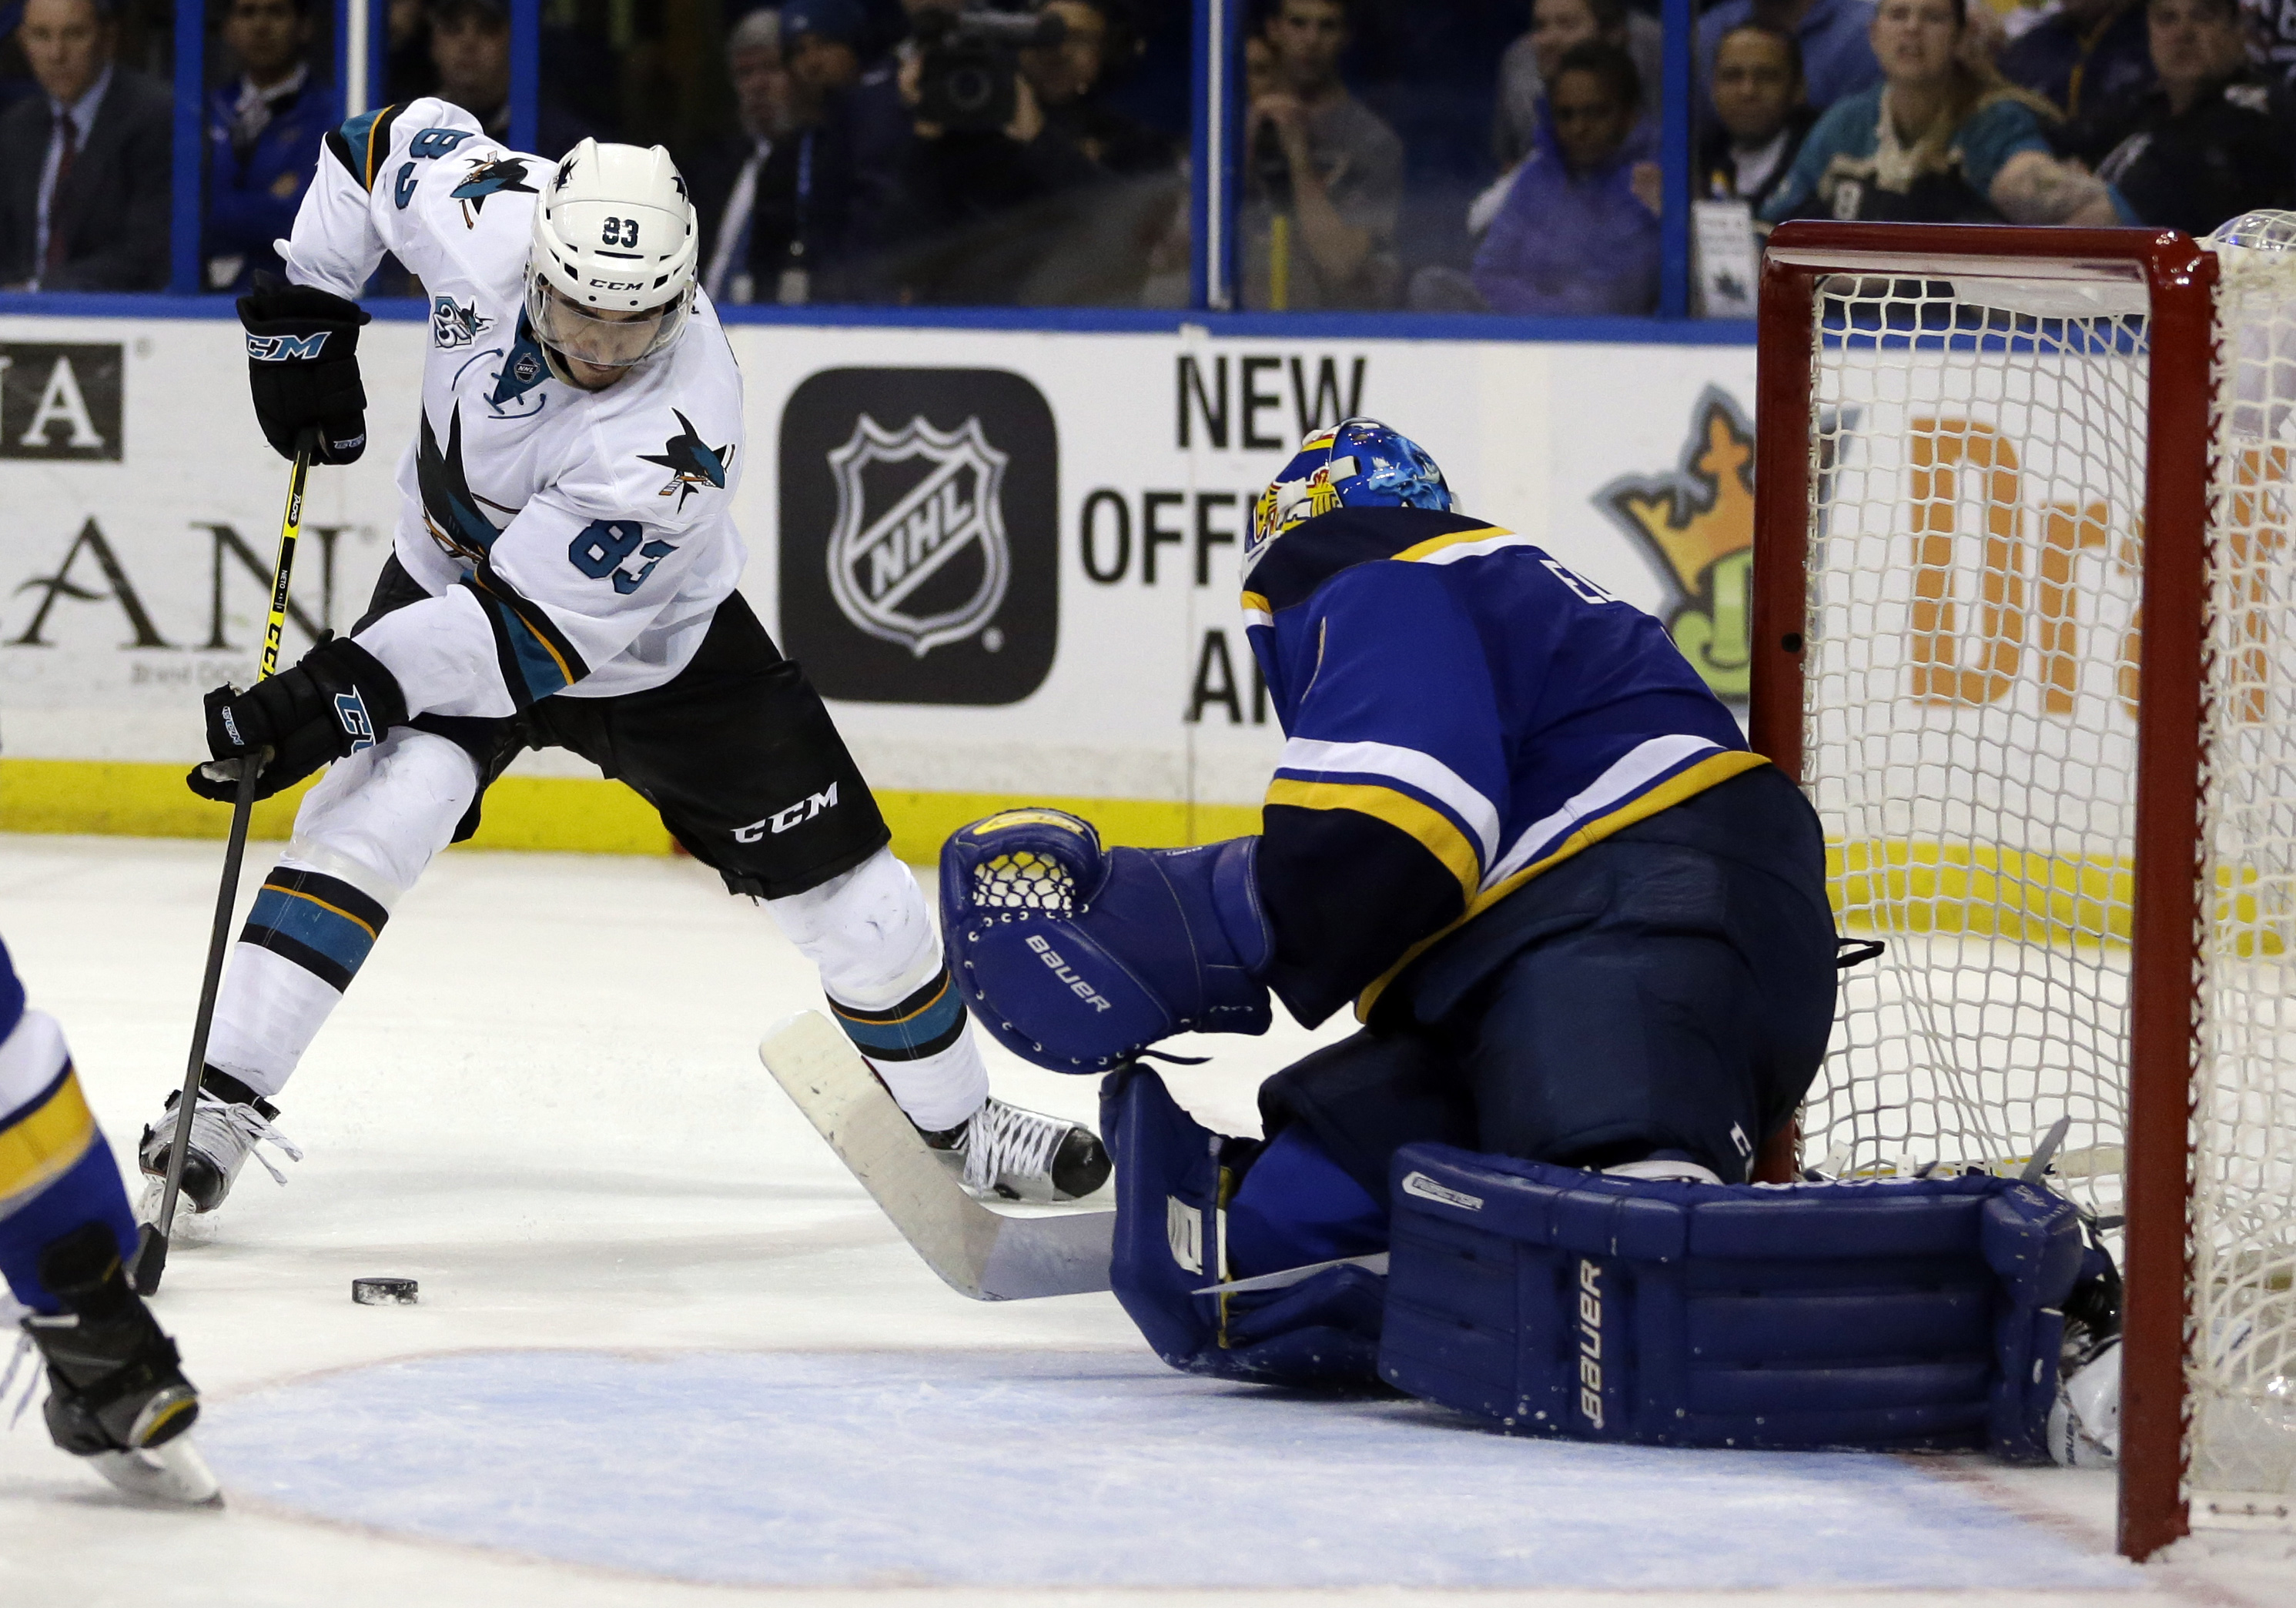 San Jose Sharks' Matt Nieto, left, prepares to score past St. Louis Blues goalie Brian Elliott during the third period of an NHL hockey game Thursday, Feb. 4, 2016, in St. Louis. The Sharks won 3-1. (AP Photo/Jeff Roberson)